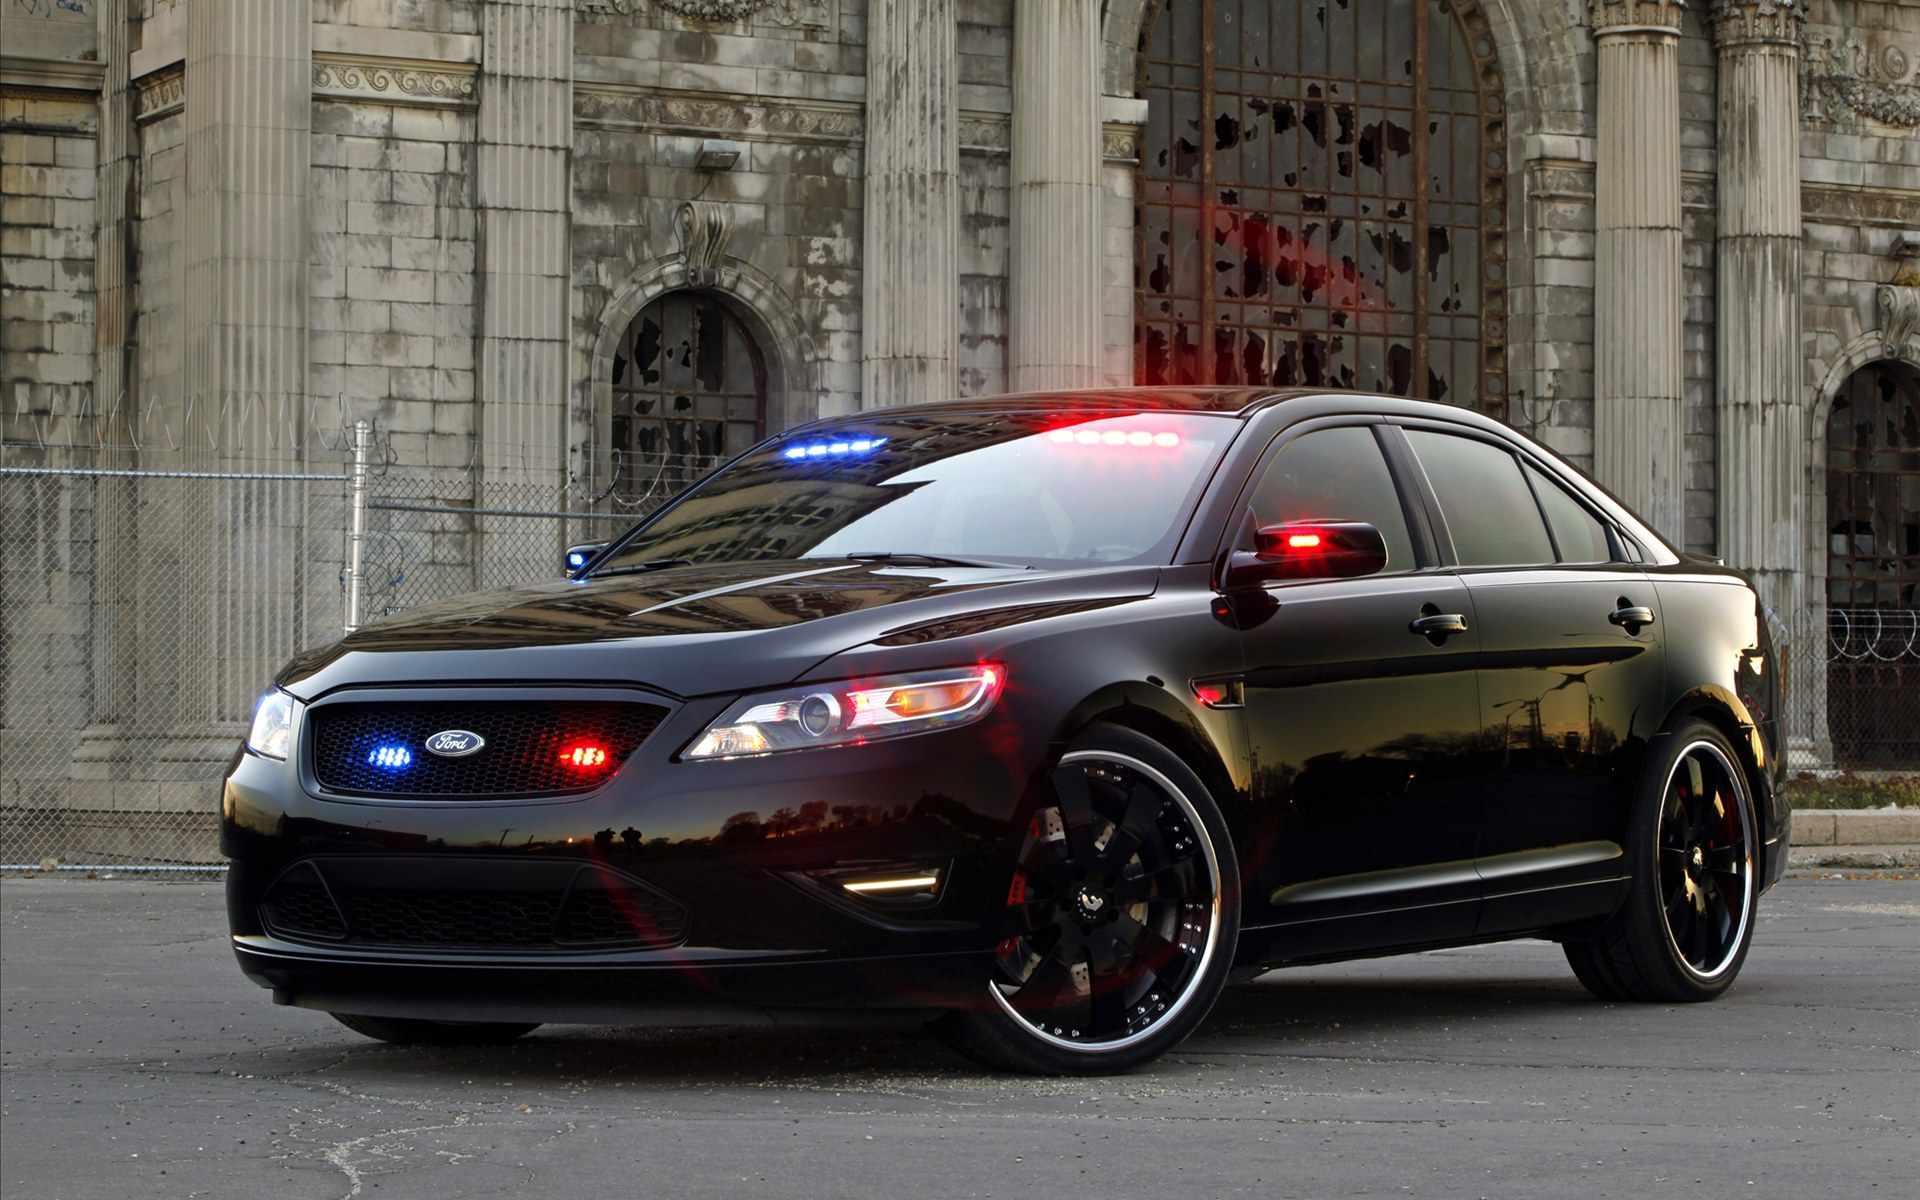 2010 Ford Stealth Police Interceptor Concept    HD Car HD Wallpaper